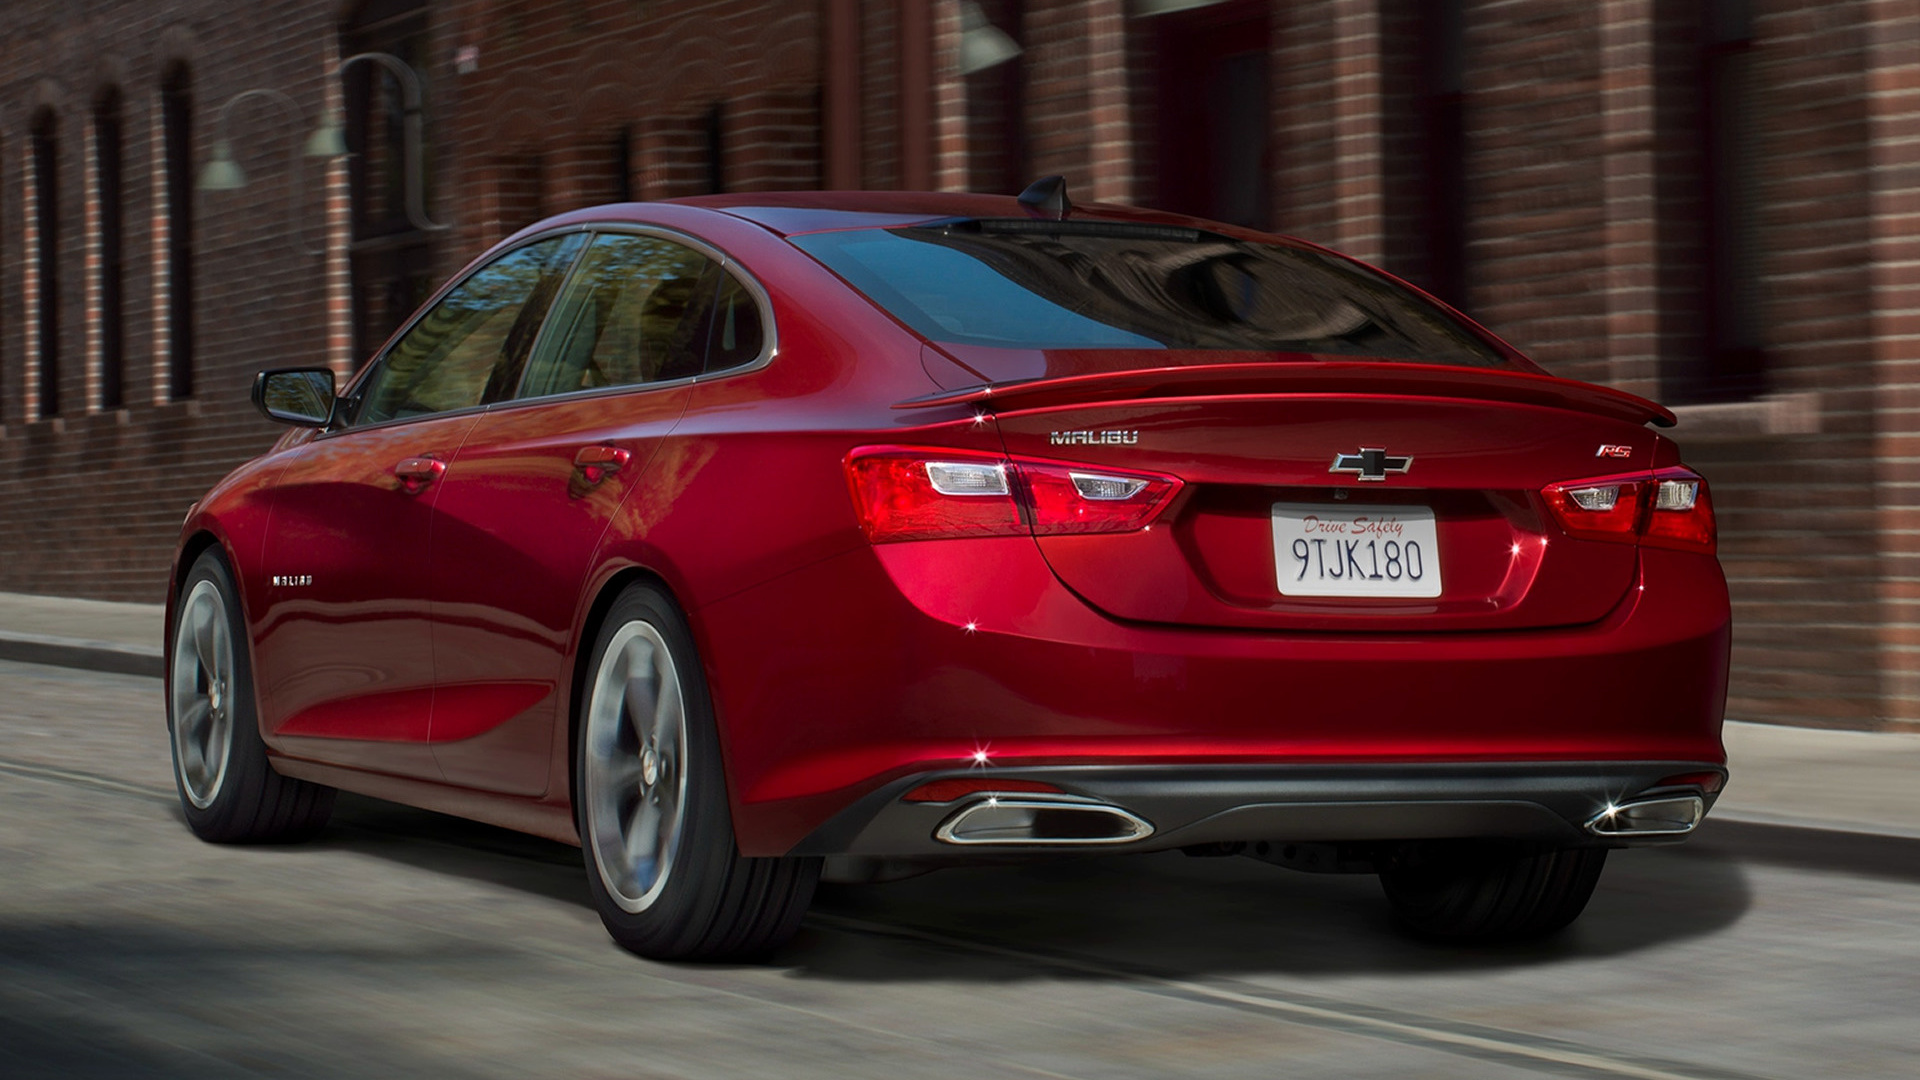 2019 Chevrolet Malibu Rs Wallpapers And Hd Images Car